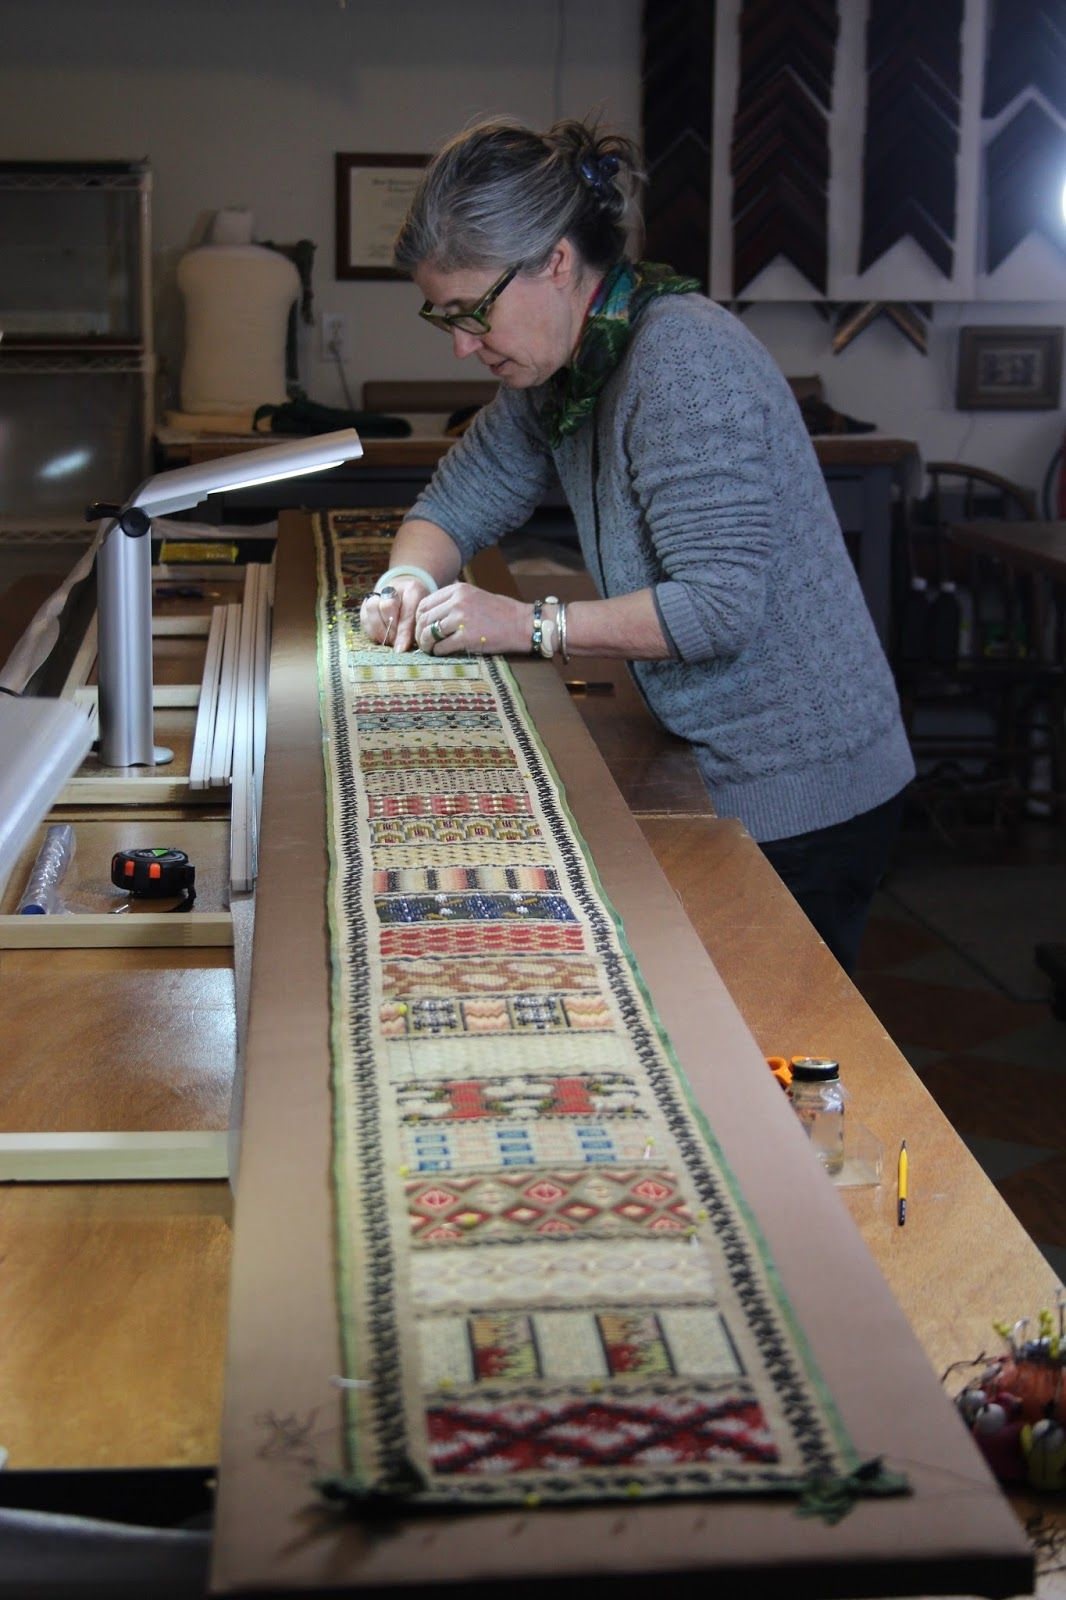 A blog about the conservation of Textiles, objects